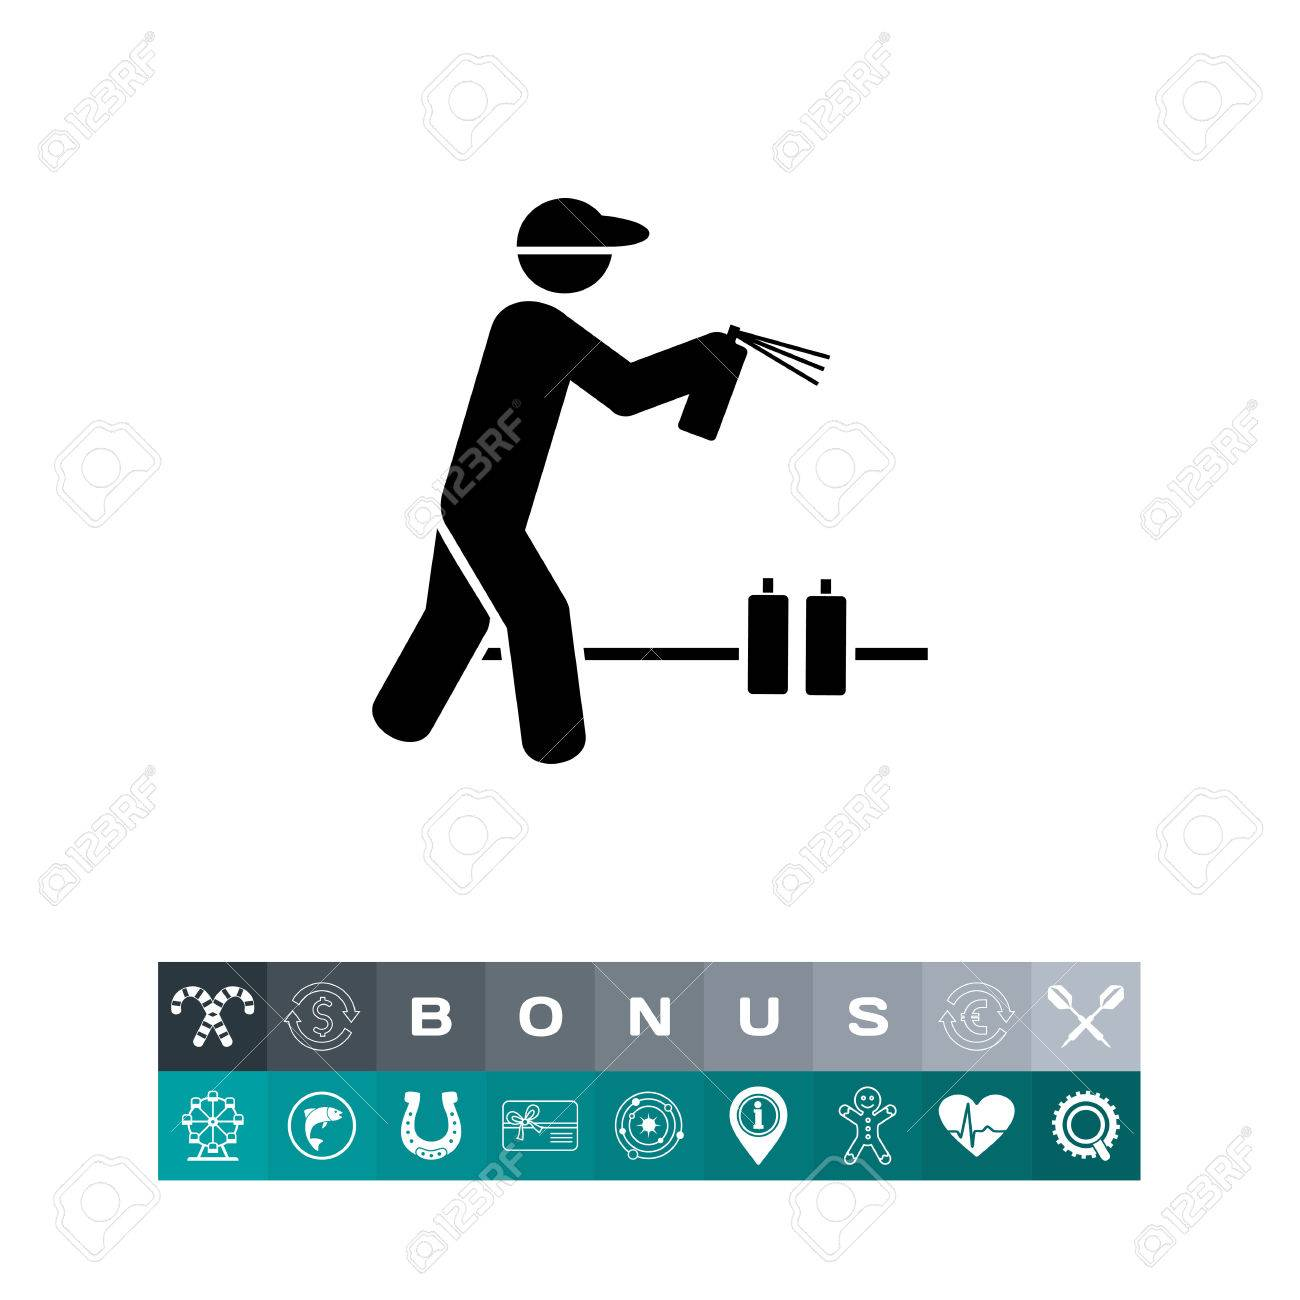 man with graffiti spray can icon royalty free cliparts vectors and